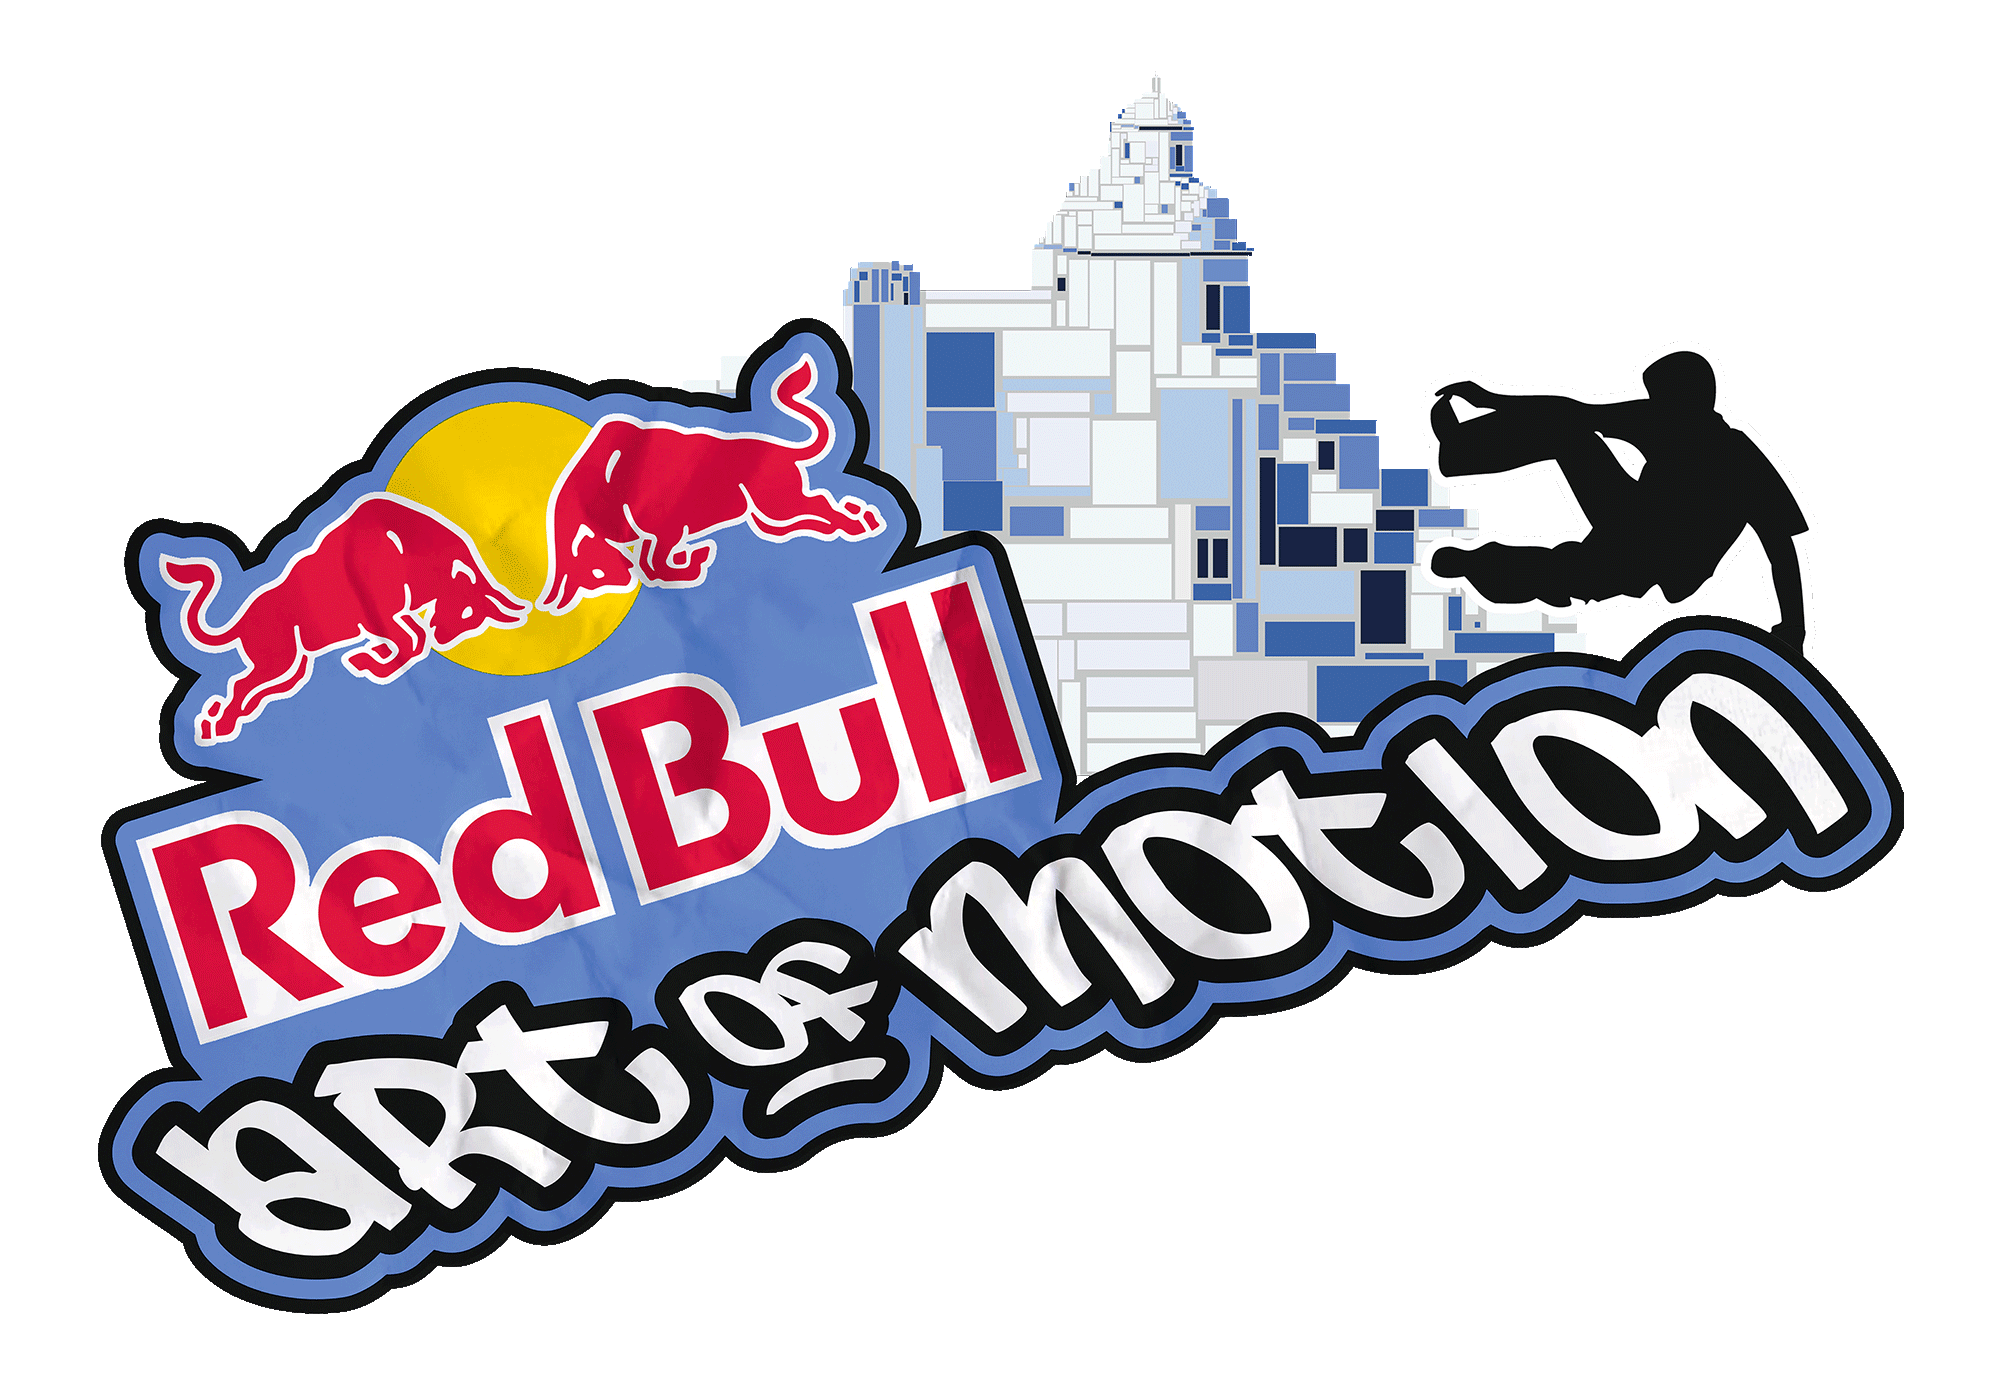 File:Red-bull-art-of-motion-event-logo-2013.png - Wikimedia Commons